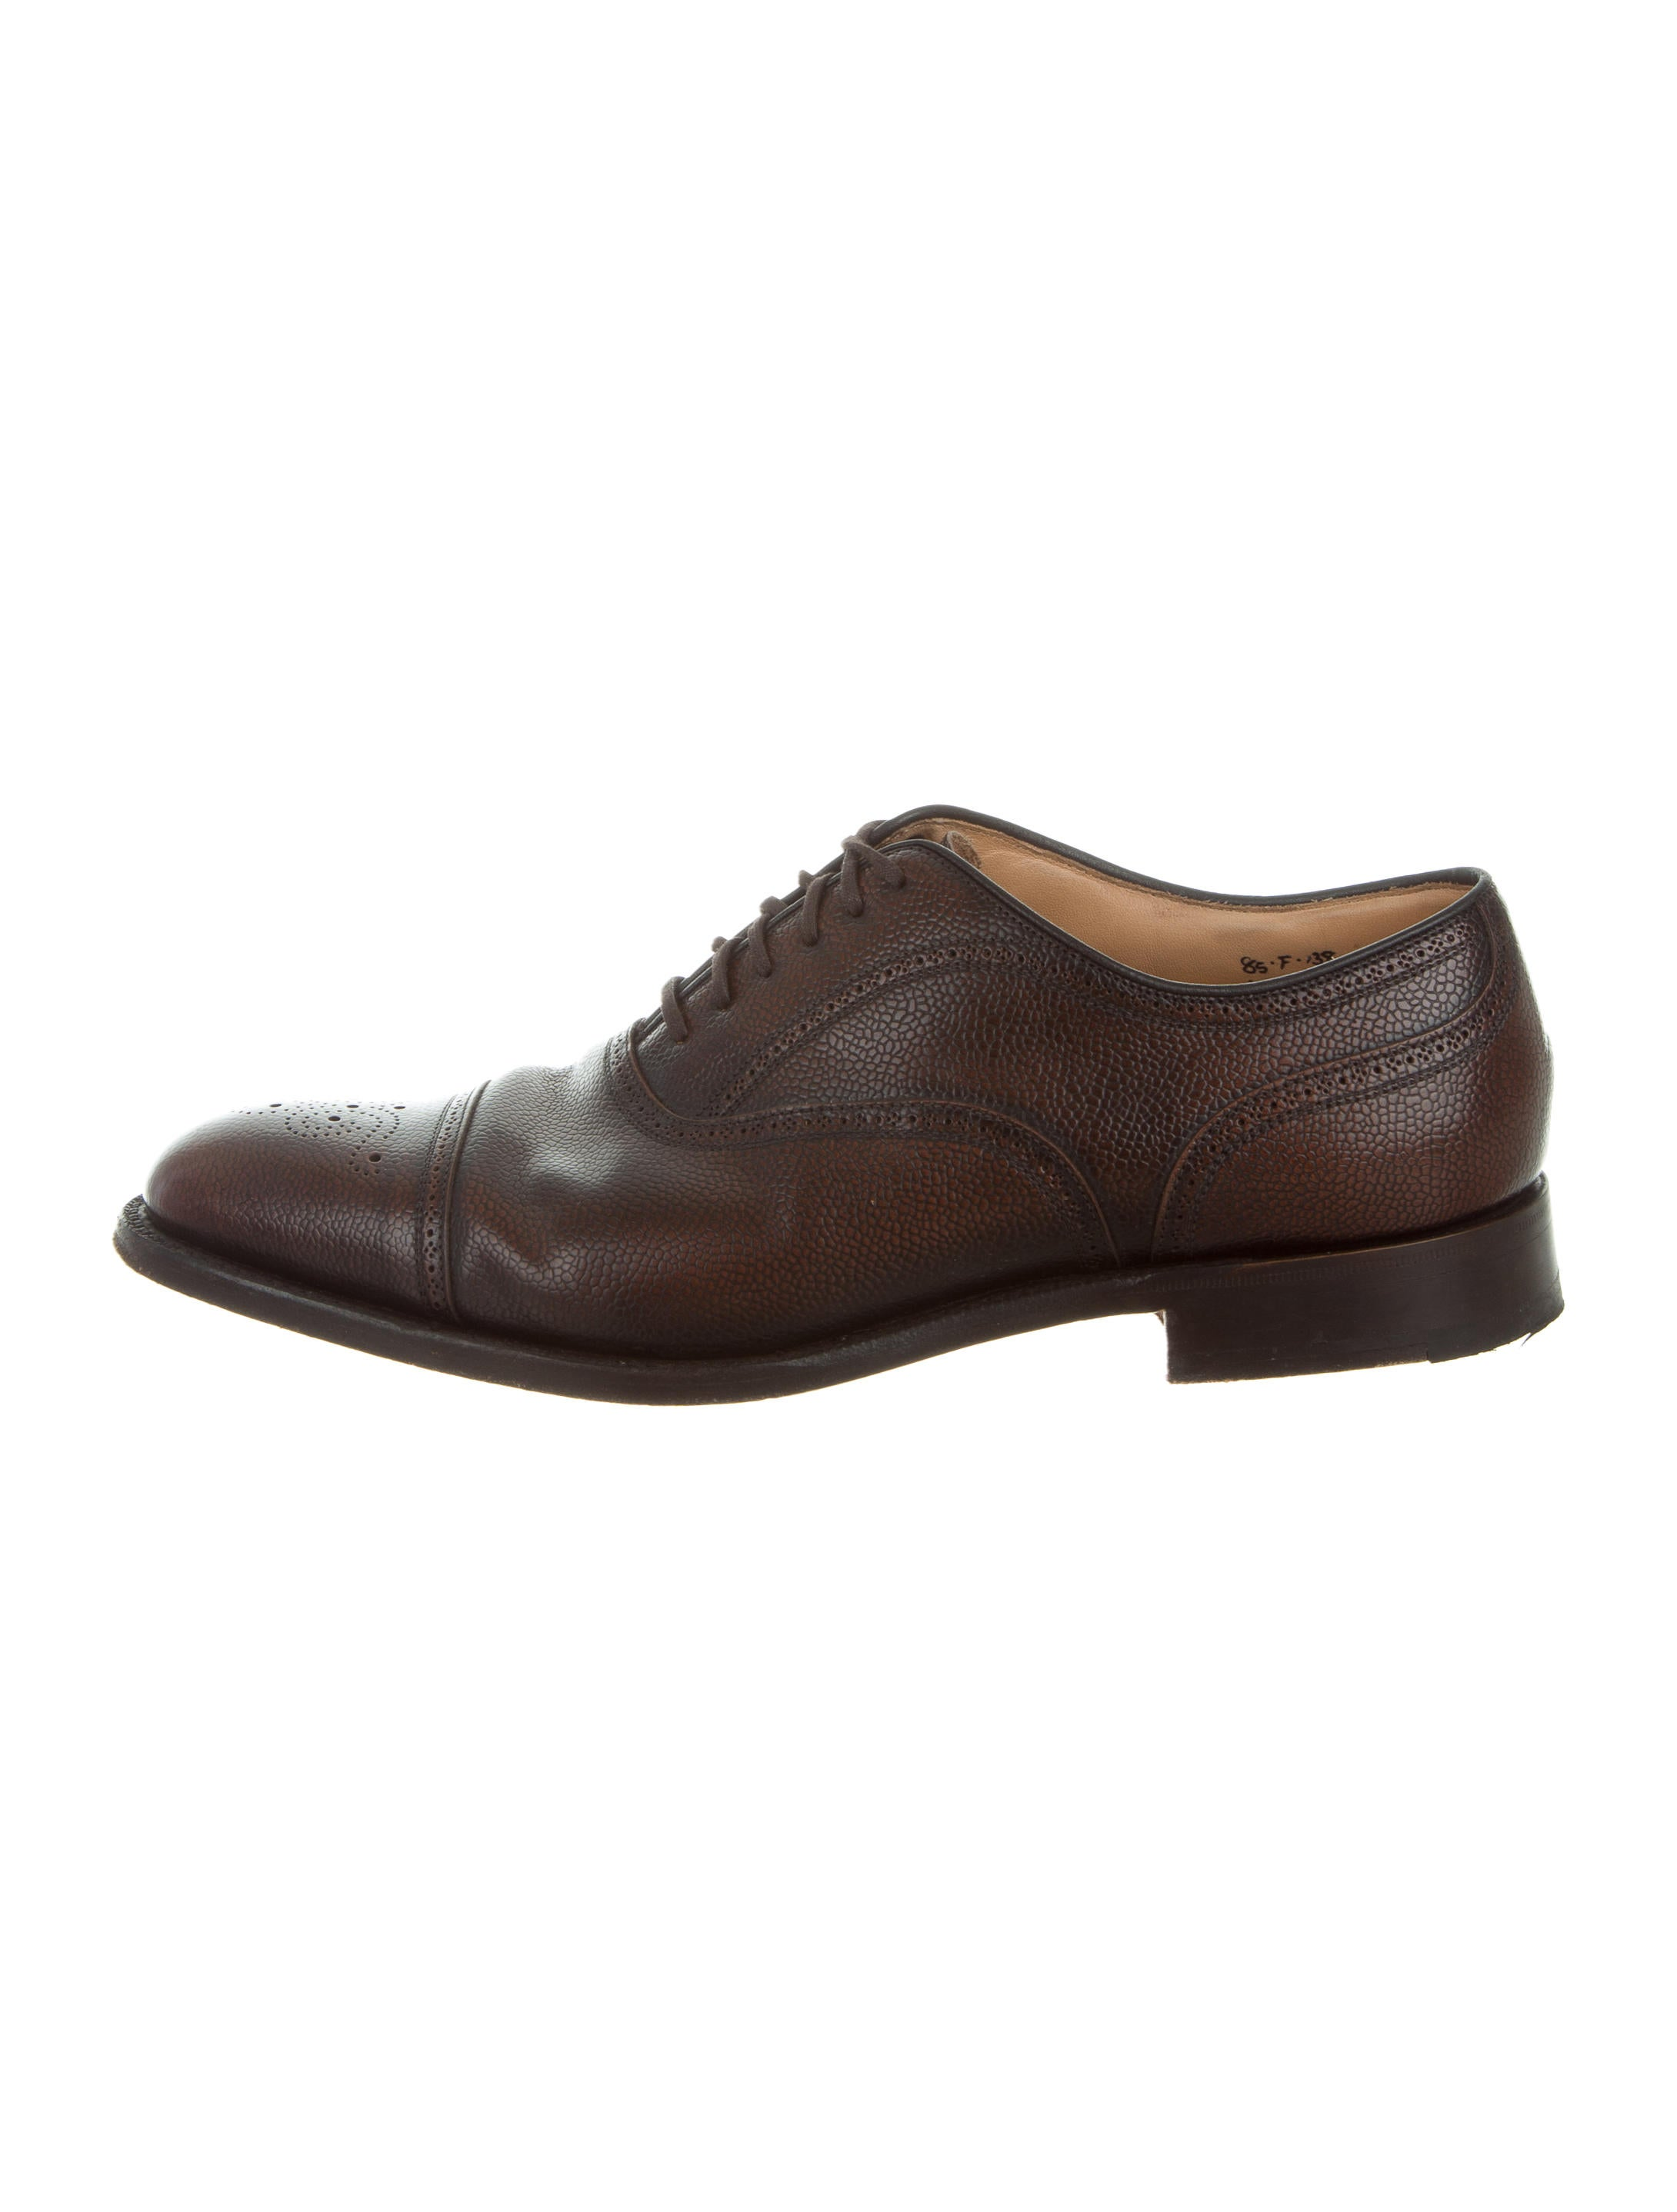 All Oxford shoes share these essential features, and although most have the eyelets on the quarter, a wholecut or seamless Oxford are the exceptions. Types of Oxfords. Oxfords are not always Brogues though they sometimes are and Brogues are not always Oxfords though some of them can be.